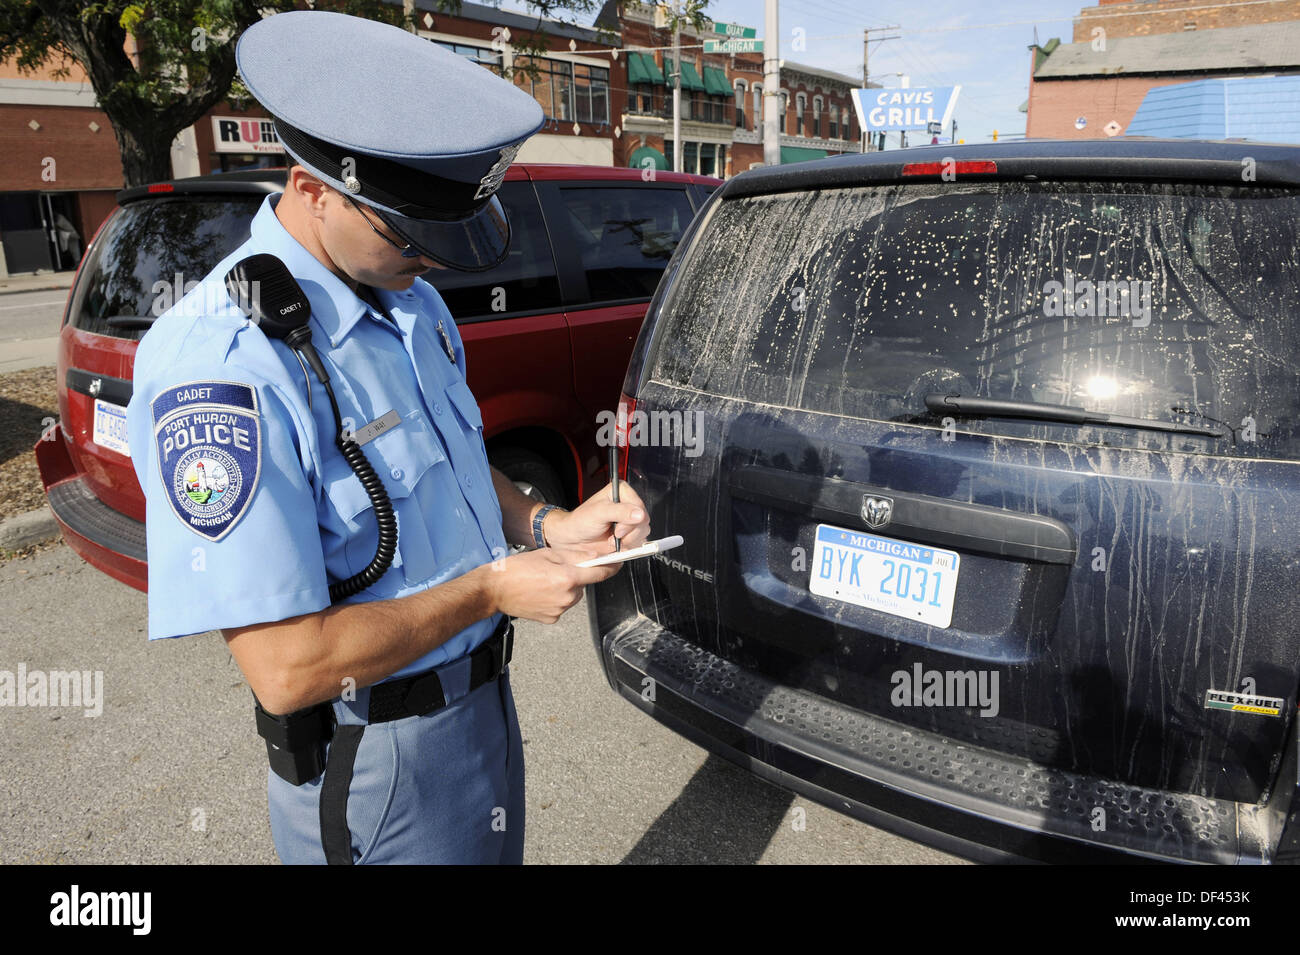 Police officer writes a ticket for parking violation - Stock Image